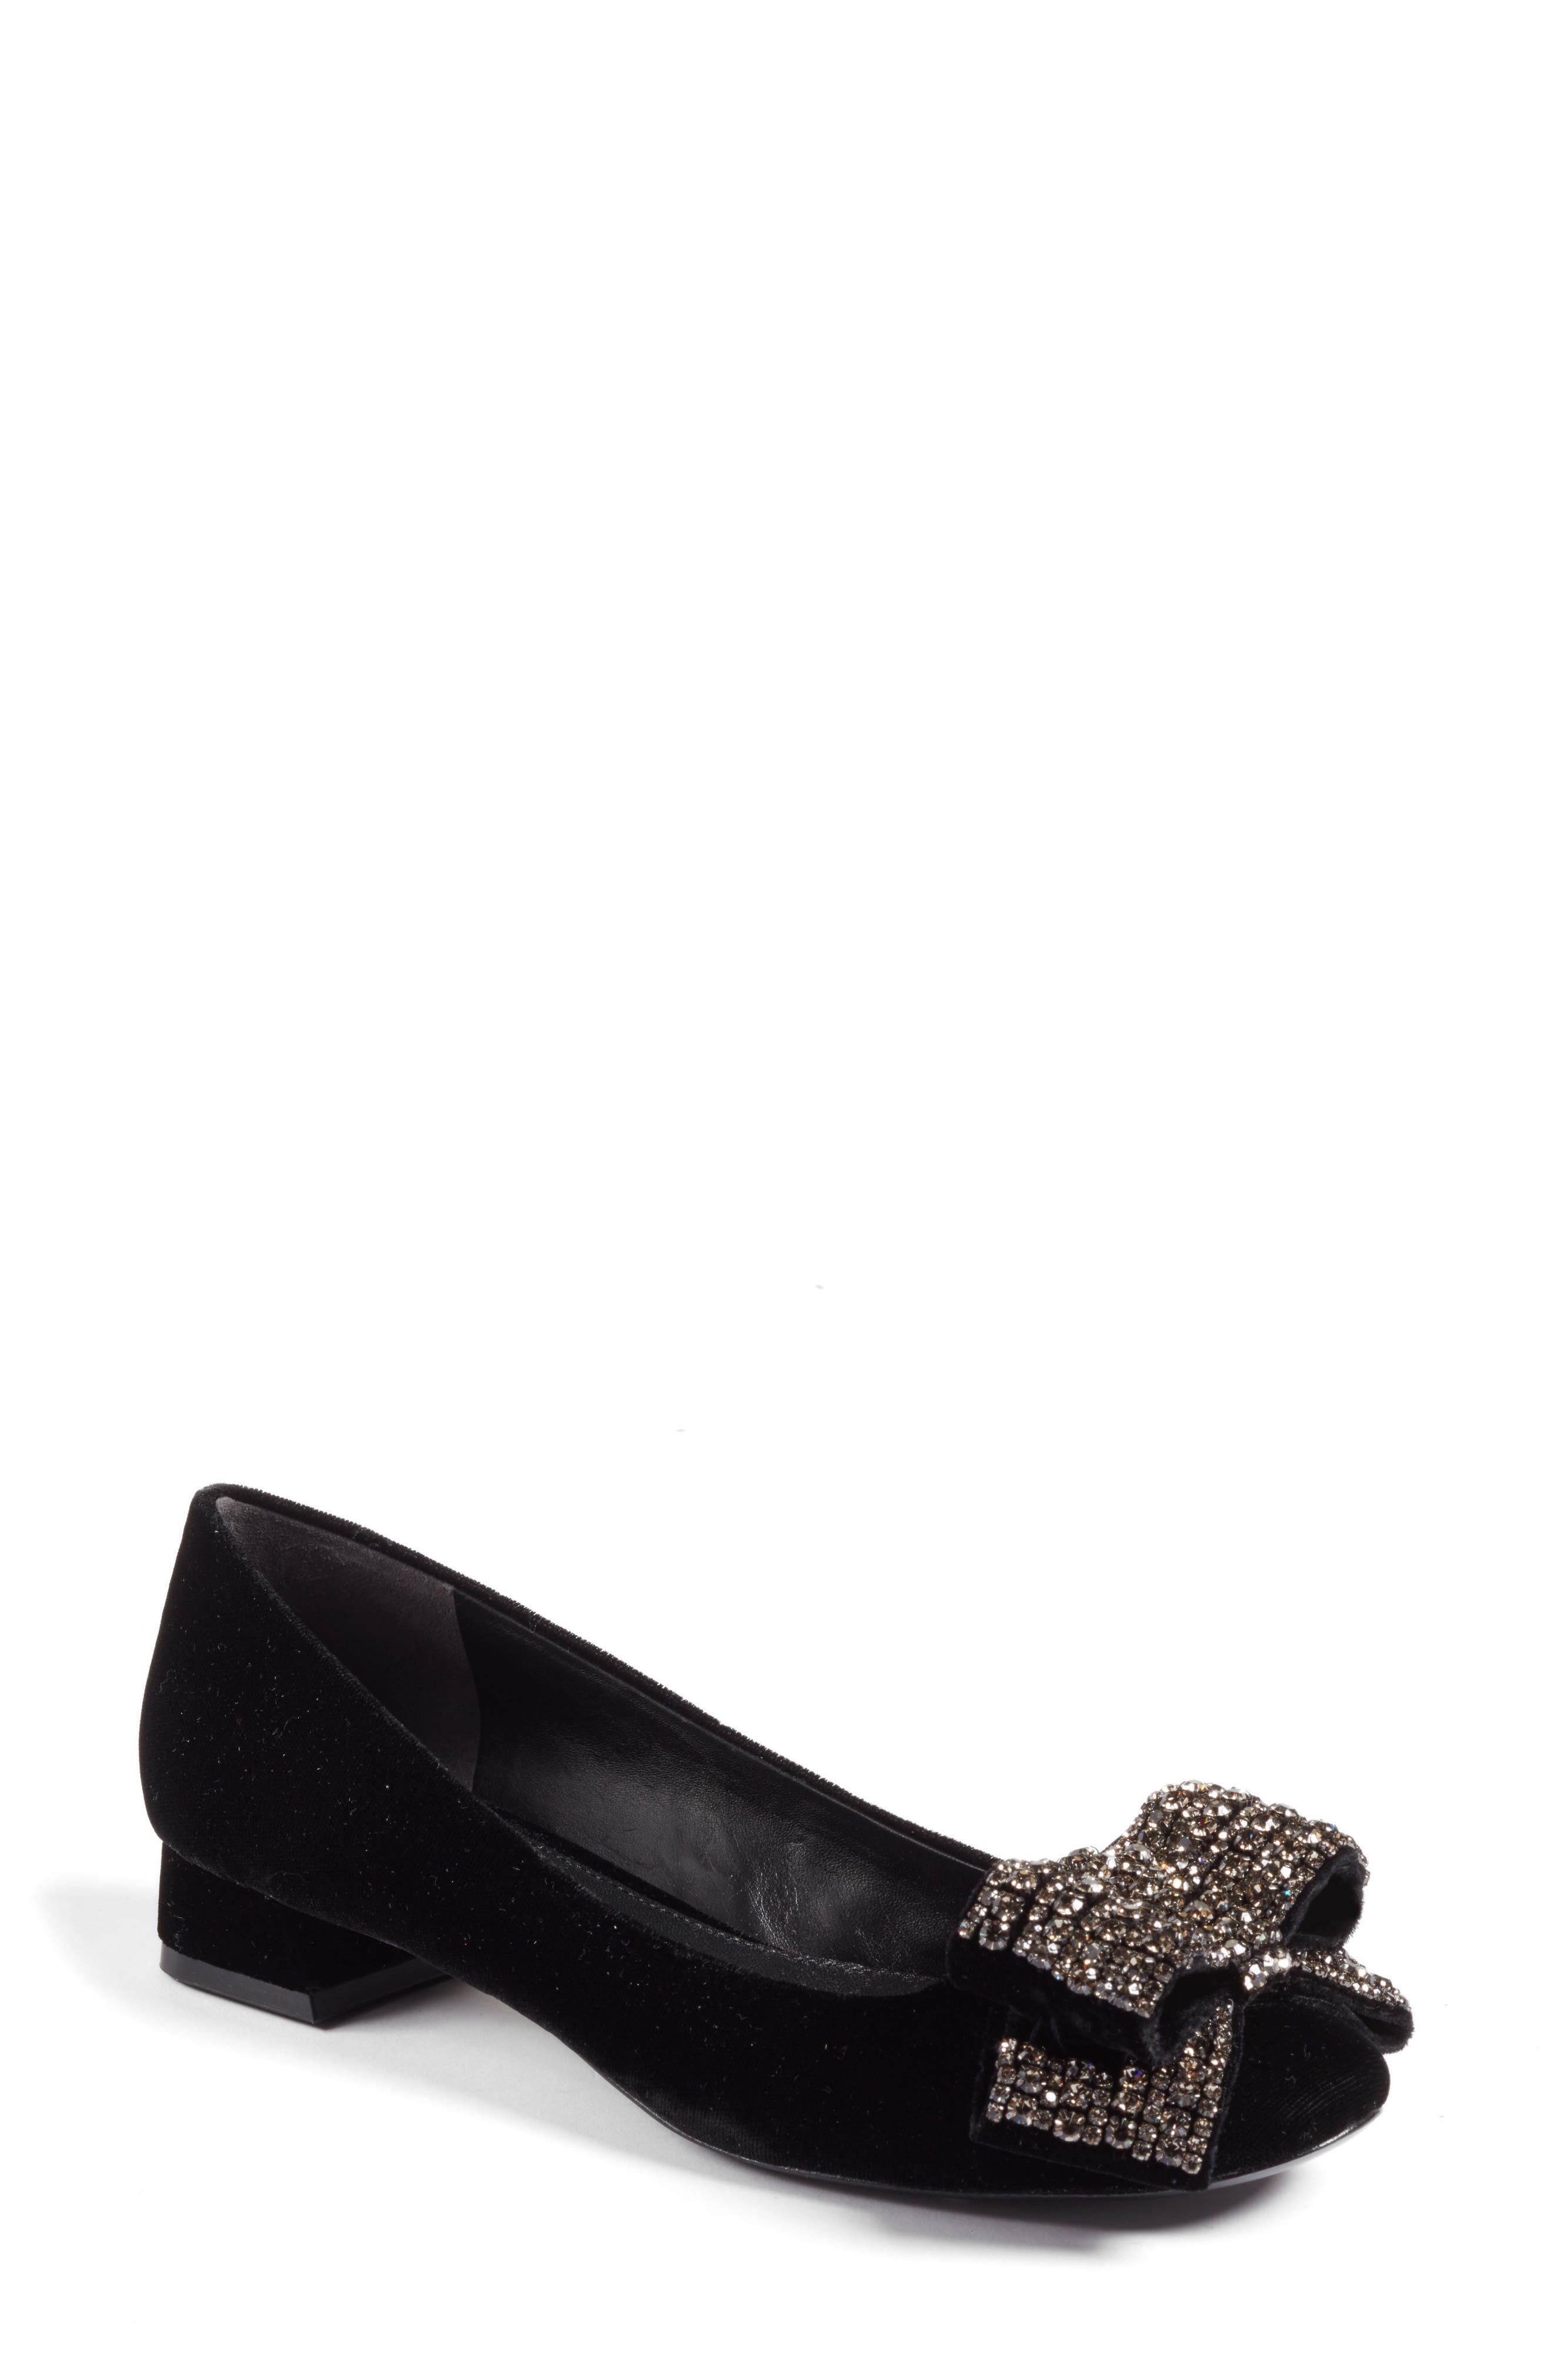 Tory Burch Josephine Embellished Bow Pump (Women)